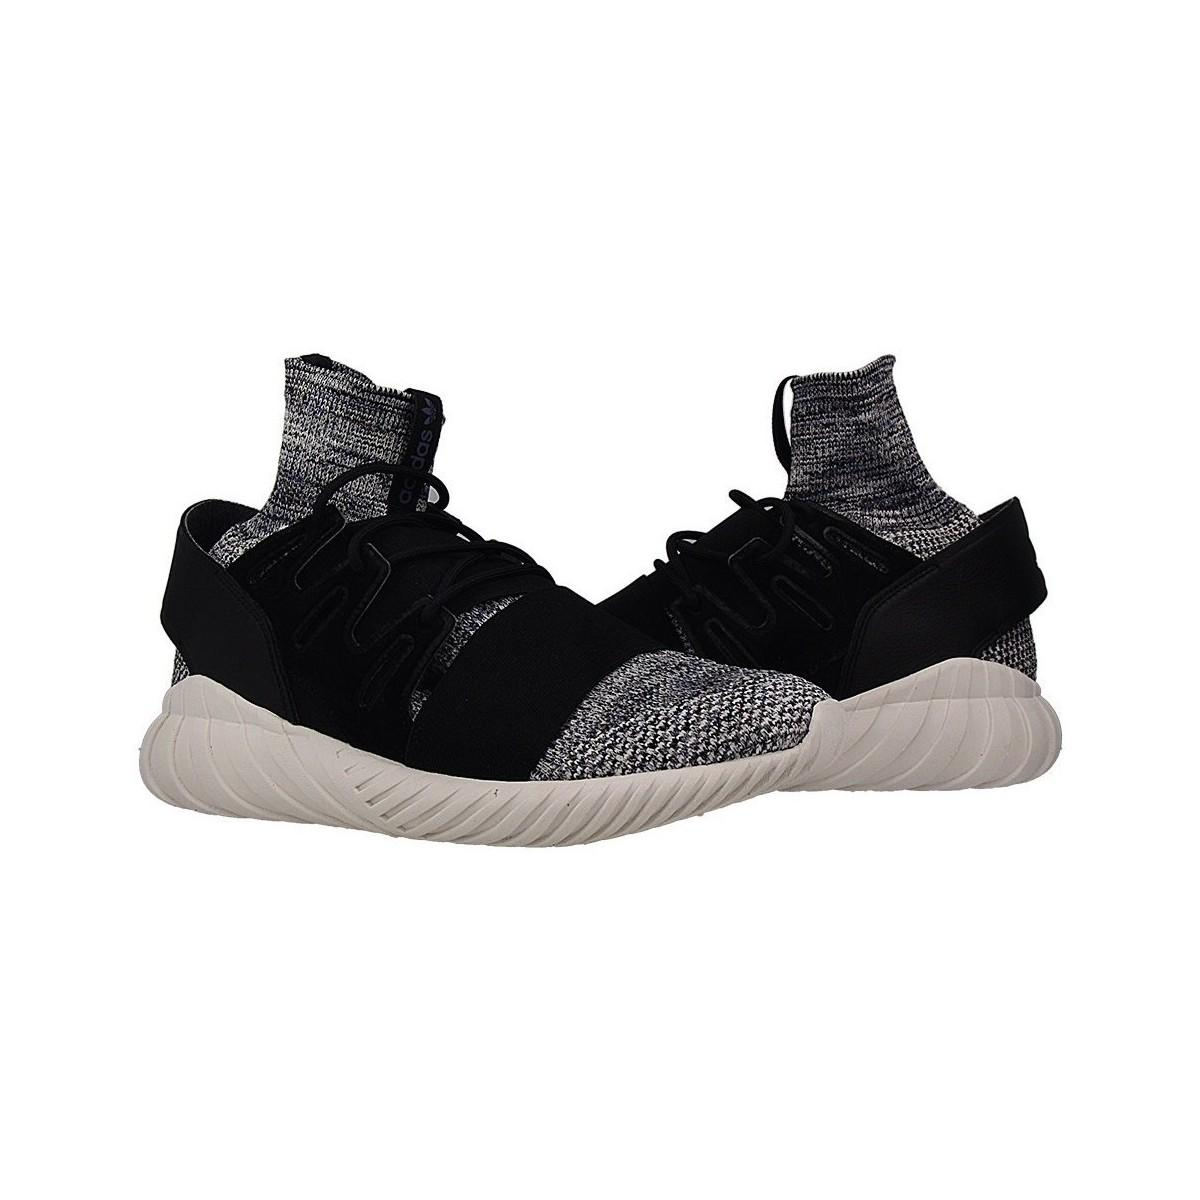 adidas Tubular Doom Primeknit Men's Shoes (high-top Trainers) In Multicolour in Black for Men